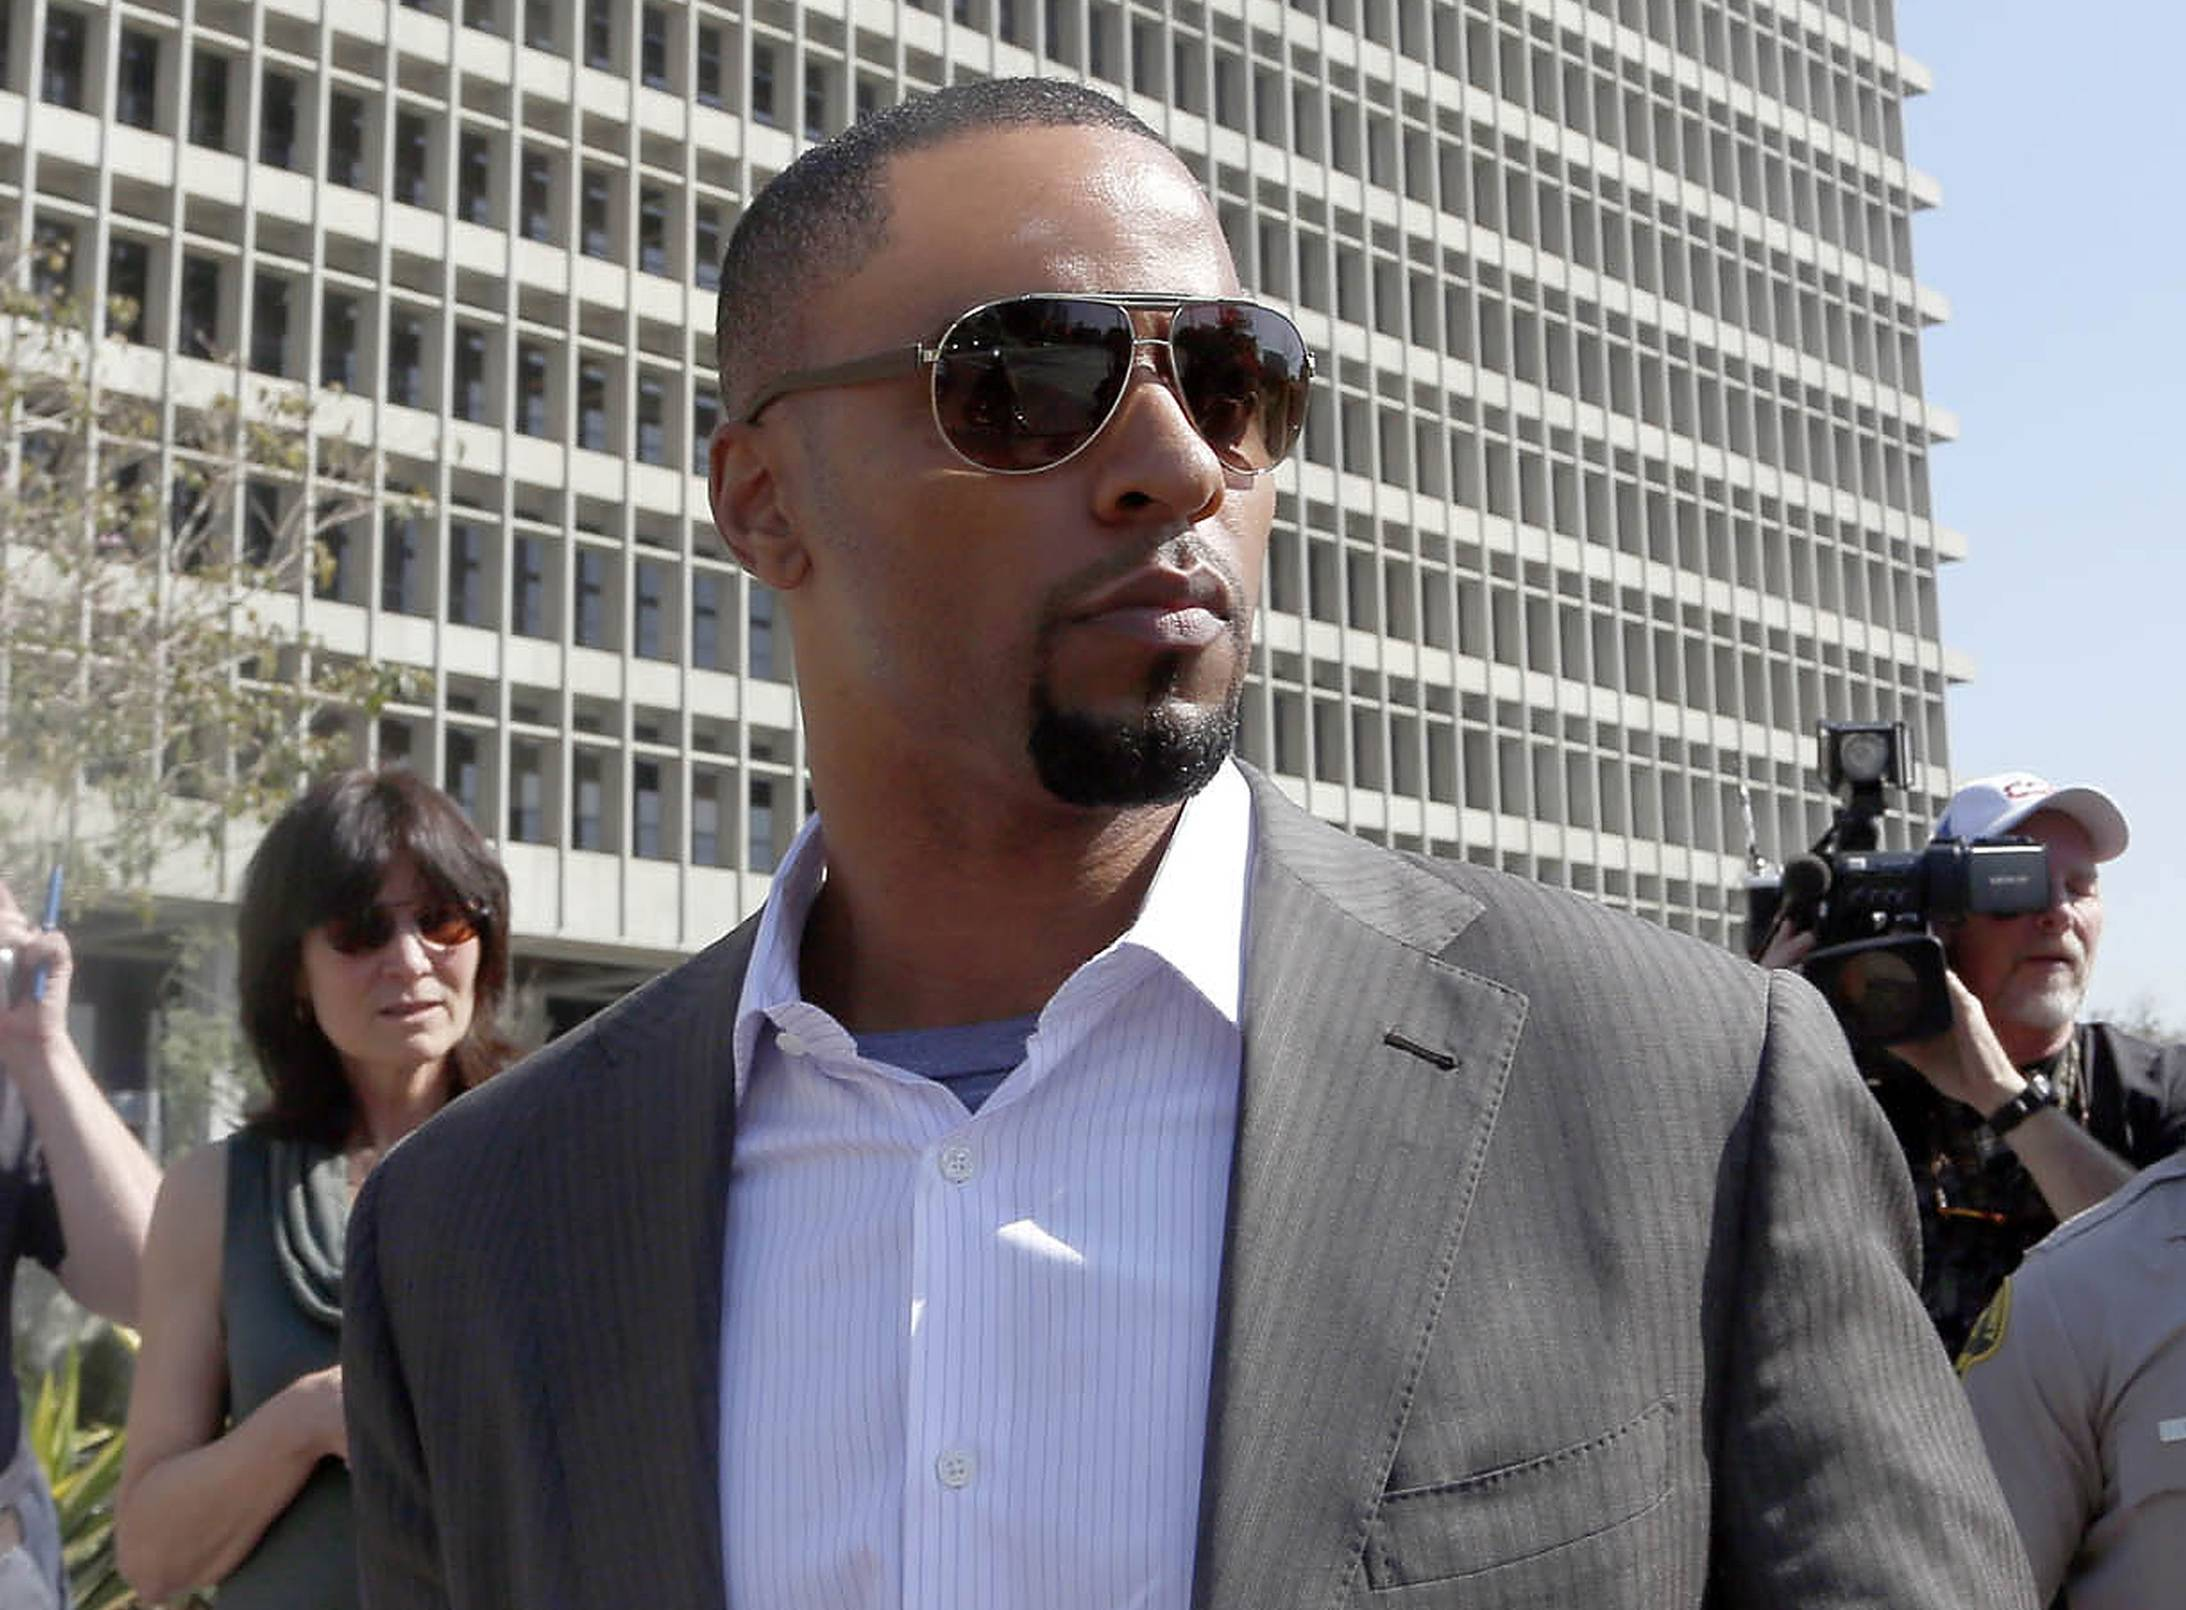 In this Feb. 14, 2014, photo, former NFL safety Darren Sharper leaves a courthouse in Los Angeles. An arrest warrant has been issued for Sharper and another man, accusing them of raping two women in New Orleans last year. Sharper also is under investigation in sexual assault cases in Florida, Nevada and Arizona and has pleaded not guilty to rape charges in Los Angeles.